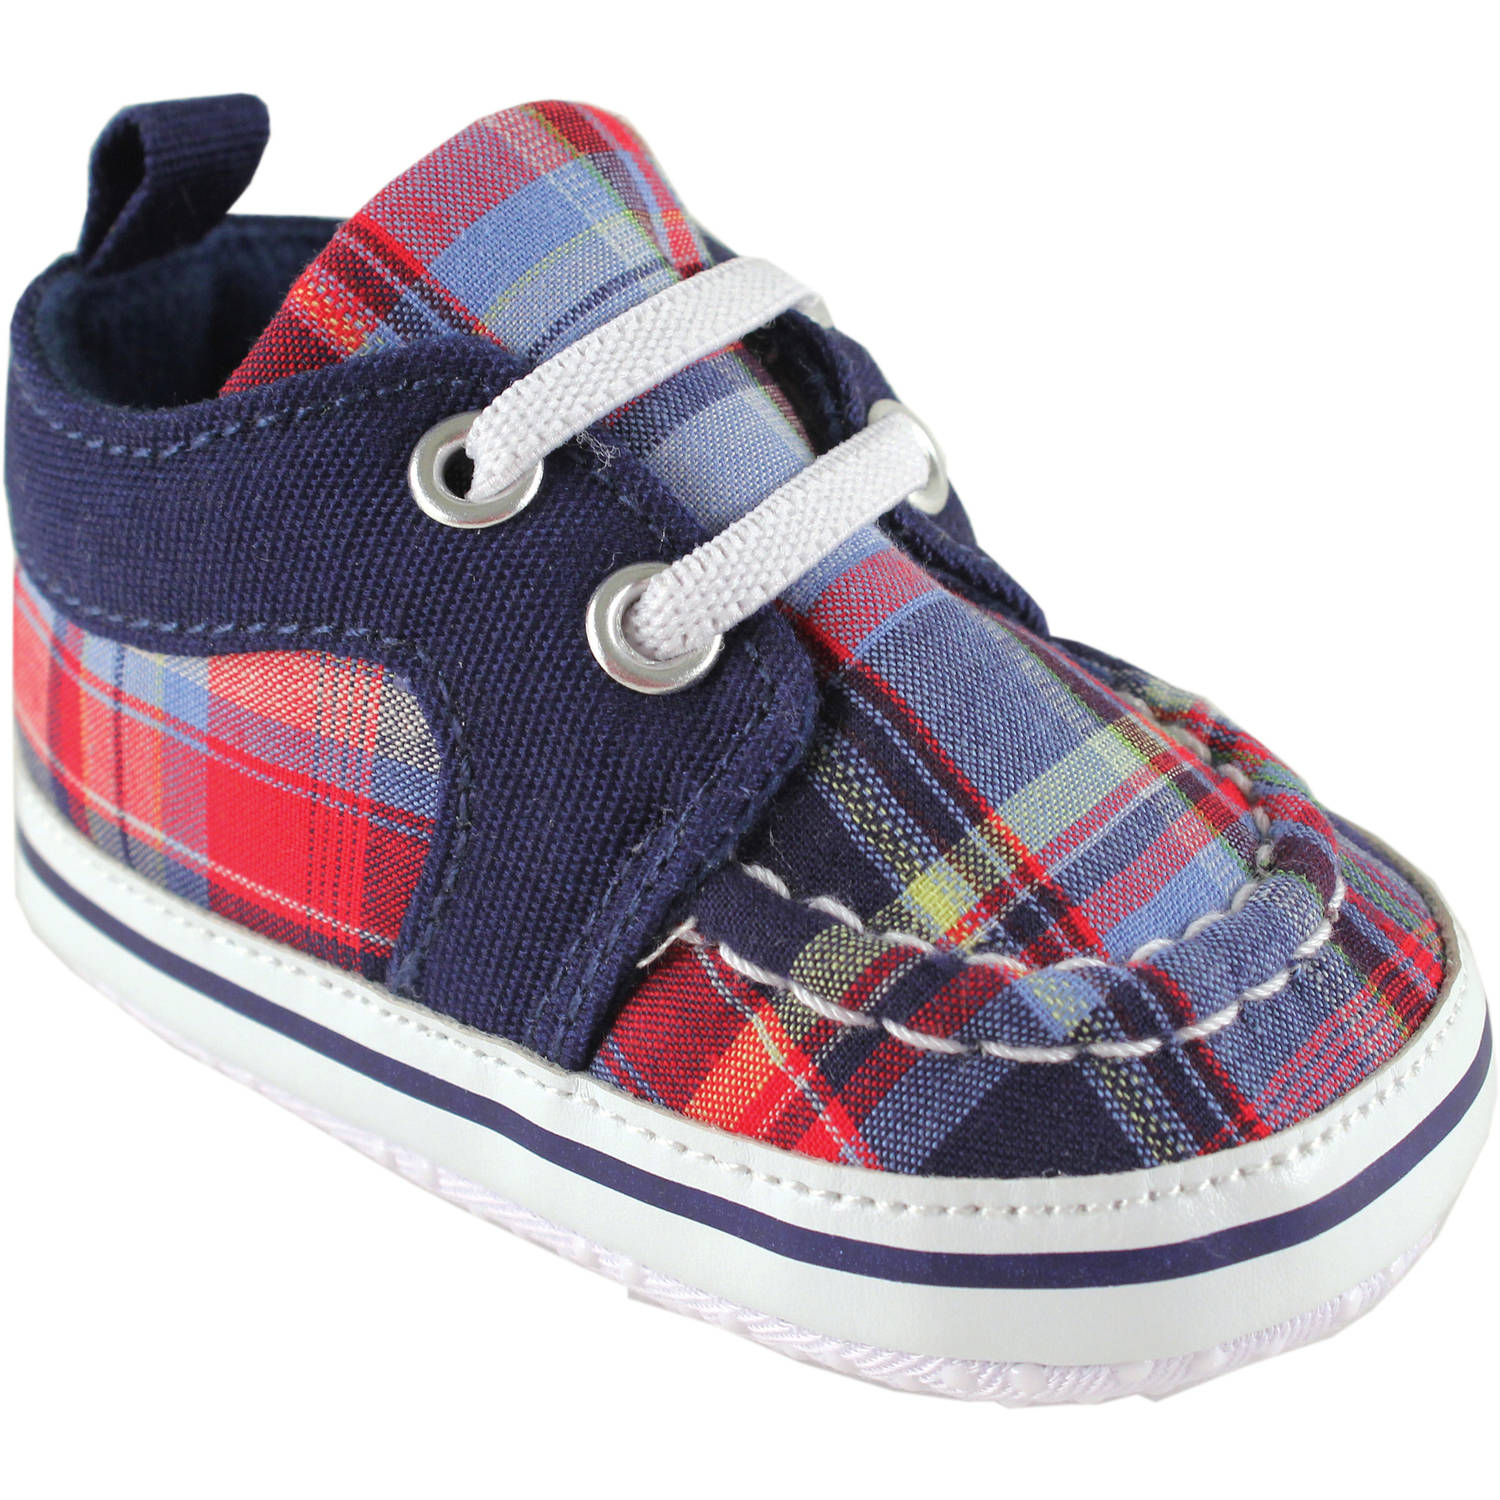 Baby Girl Sparkly Sneakers Walmart